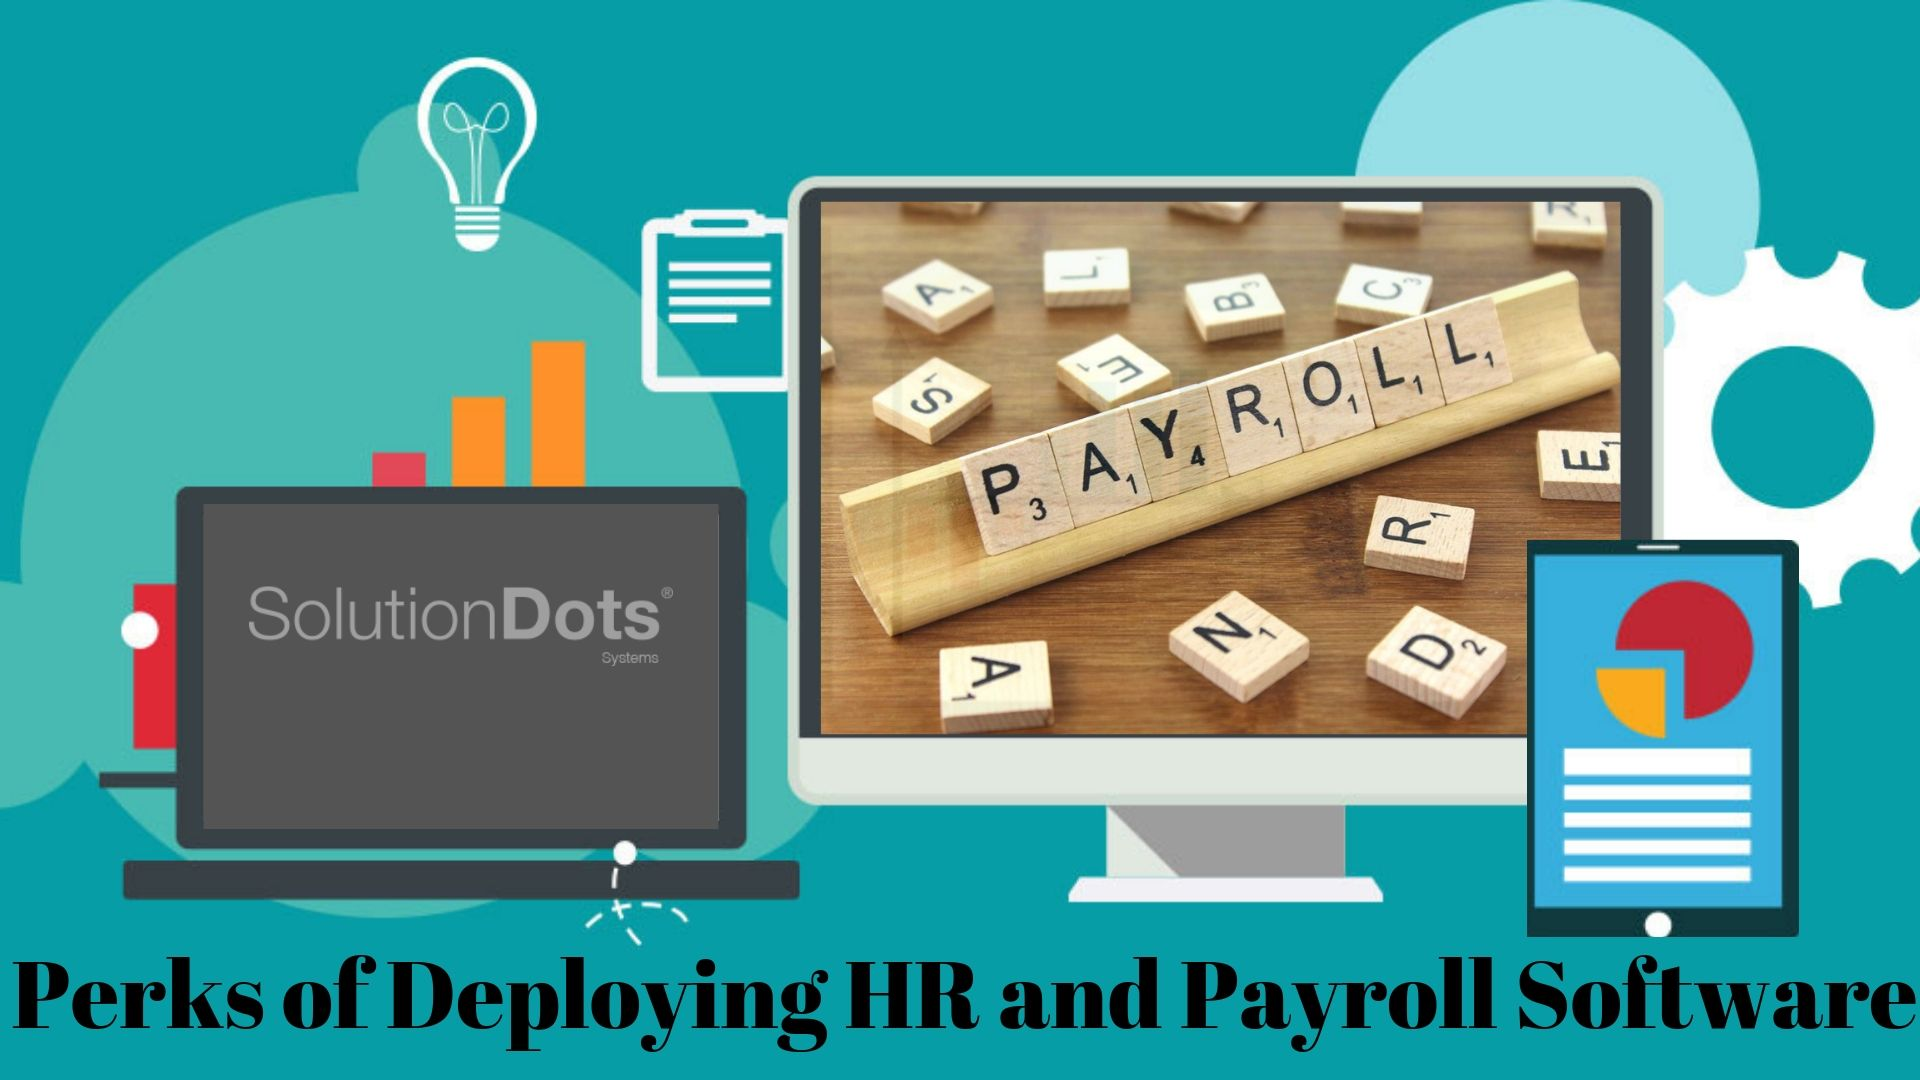 Perks of Deploying HR and Payroll Software | Posts by Faizan